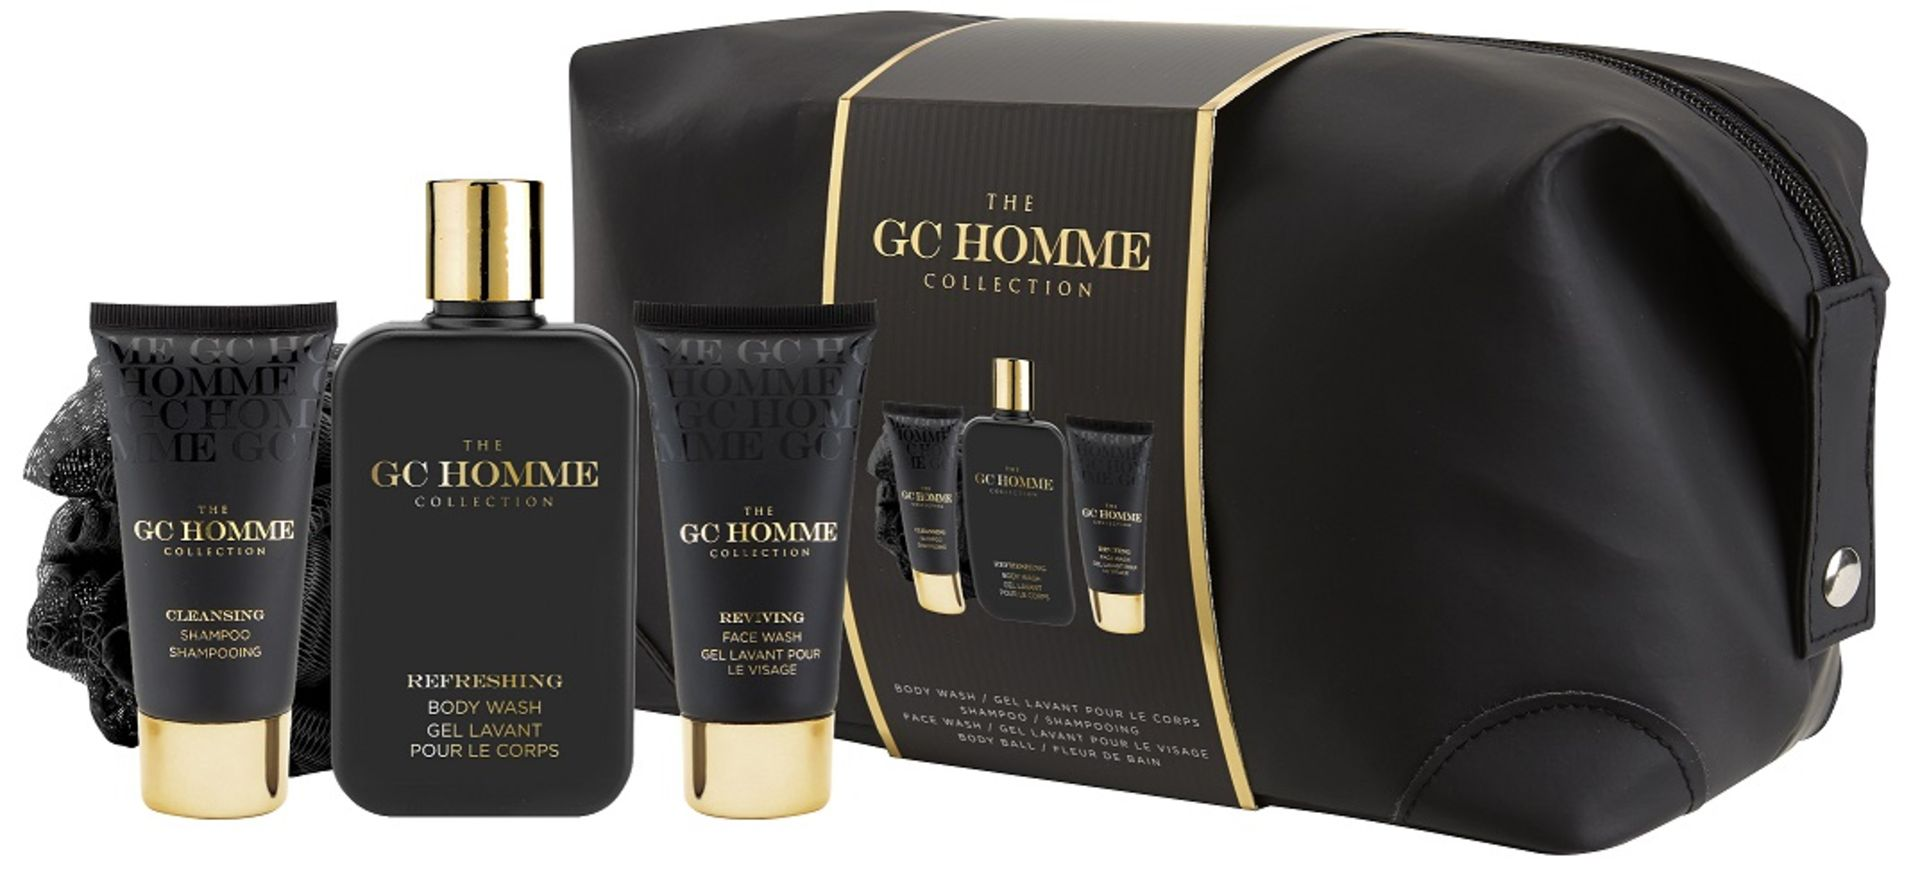 Lot 51552 - V Brand New Grace Cole Captivate GC Homme Collection Toiletry Bag Containing Body Wash - Shampoo -